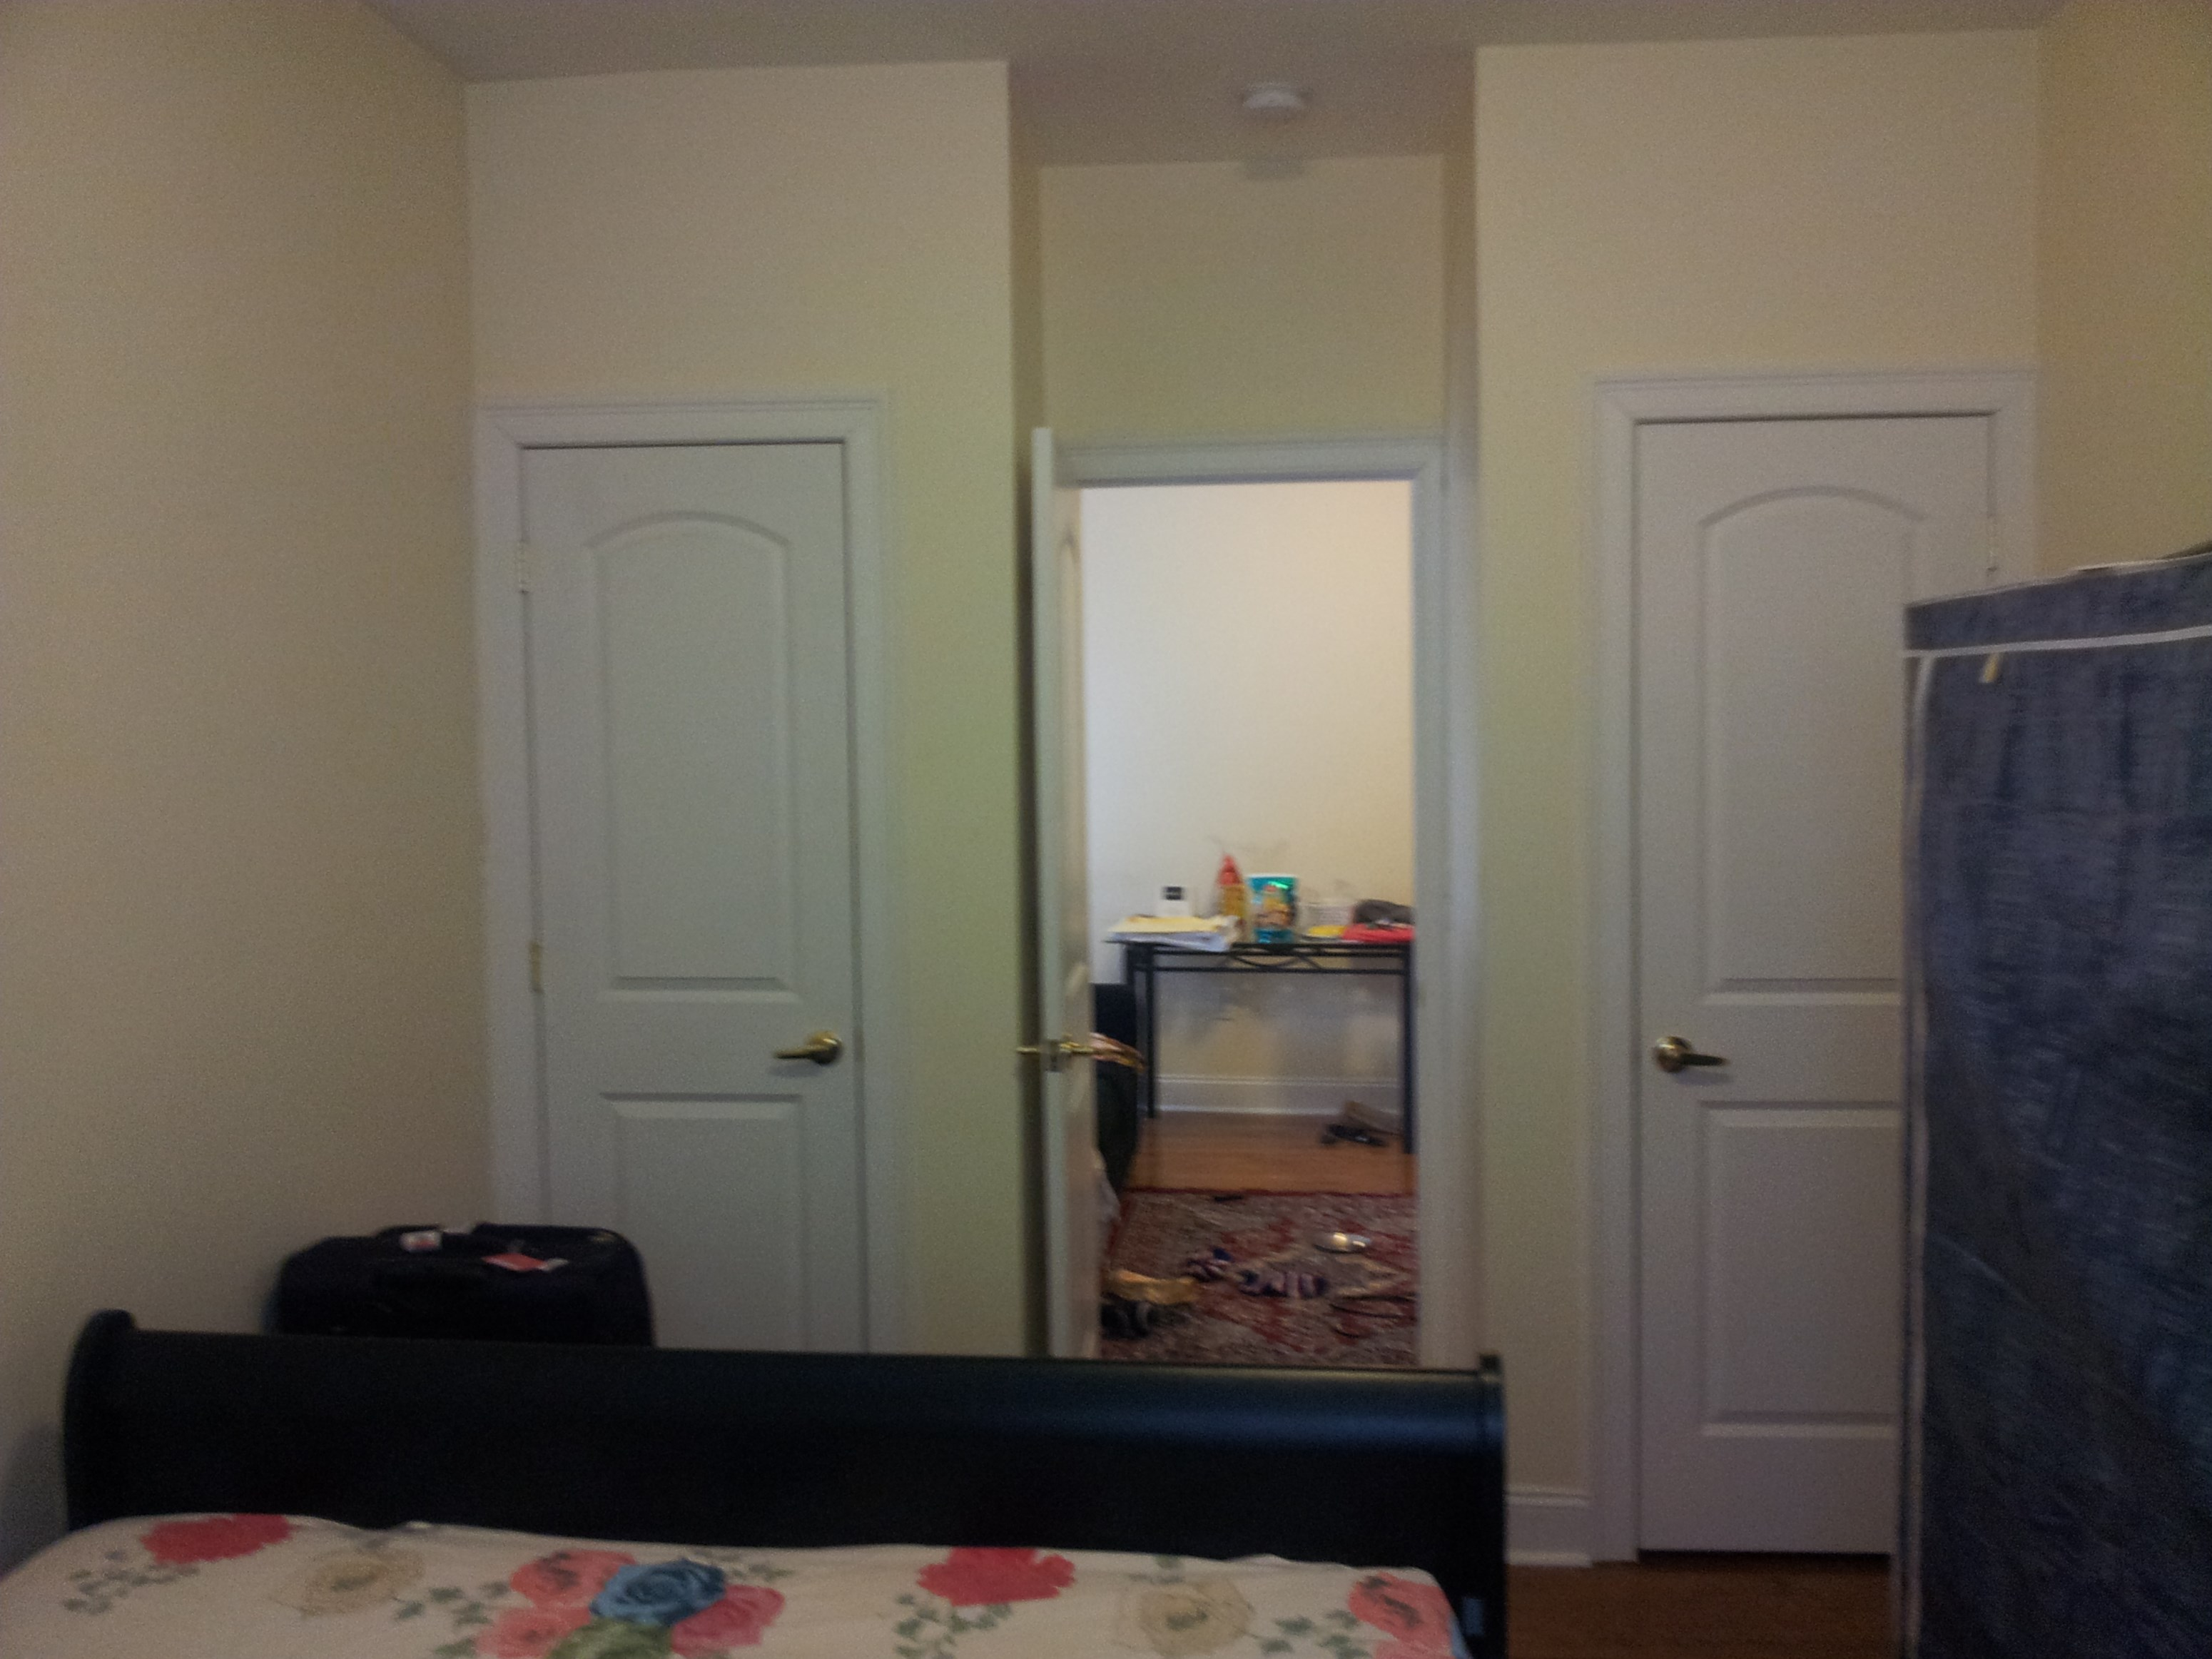 1 Bedroom Apartment For Rent In John F Kennedy Blvd Jersey City Available